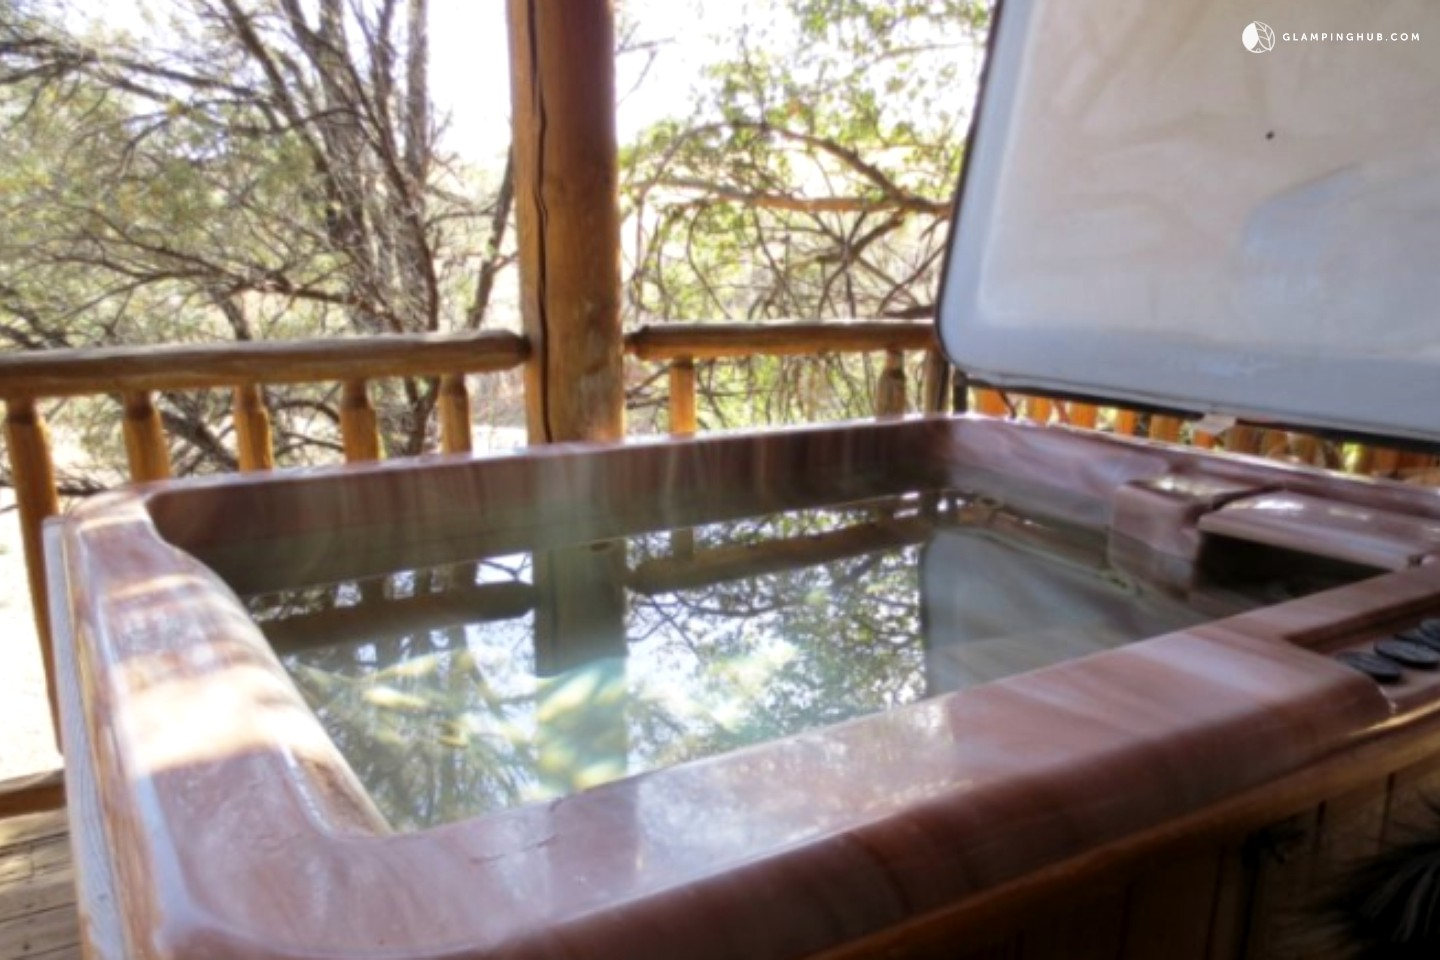 Family cabin near prescott national forest arizona for Az cabin rentals with hot tub